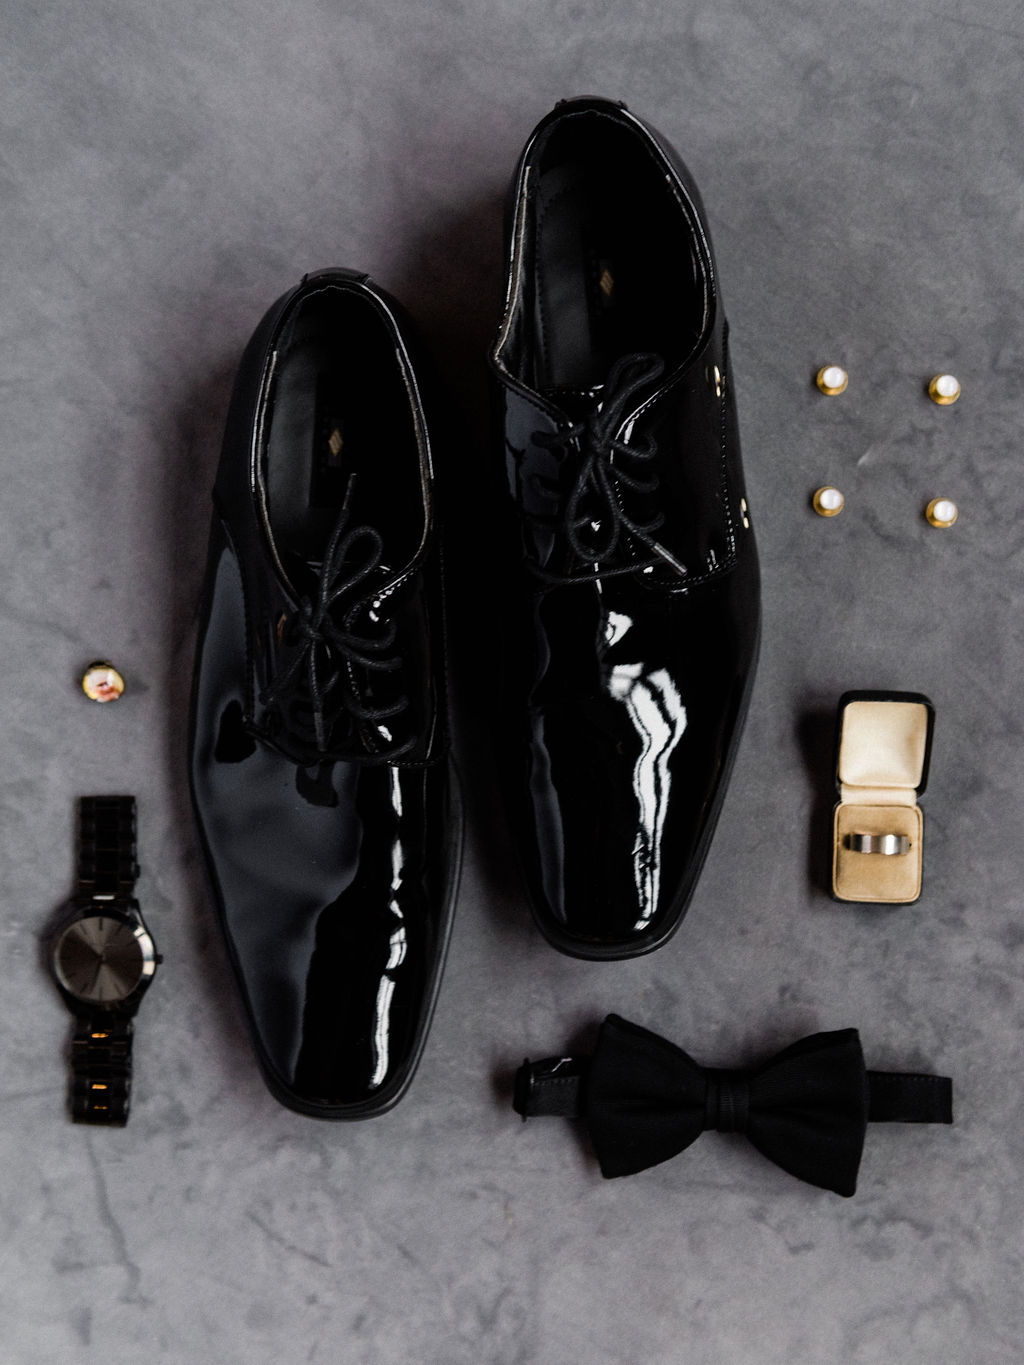 A groom's shoes